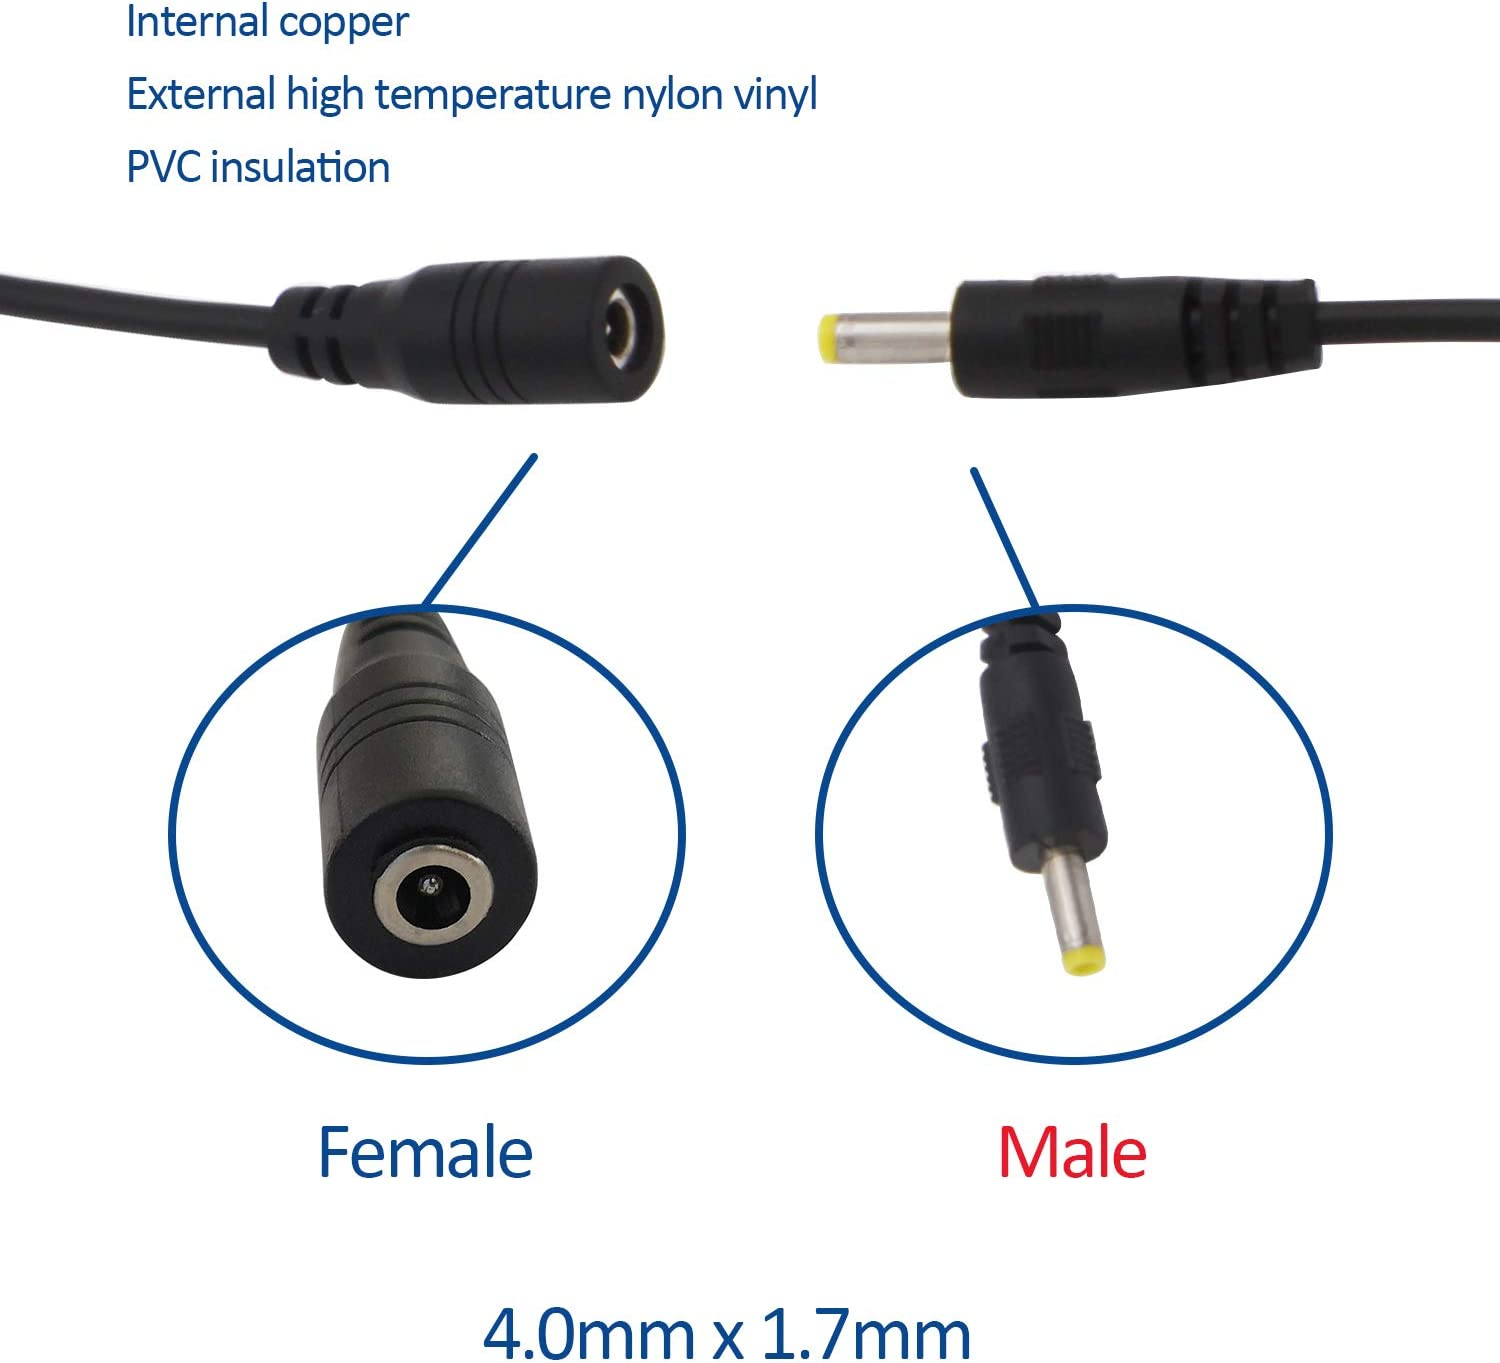 Njuone 5 Pairs DC Line DC 4.0 1.7 Power Line DC 4.0mm x 1.7mm Public Plug Line DC Extension Line DC Power Pigtail Cable 4.0mm x 1.7mm Male and Female DC Power Plug Connector Plug Pigtail